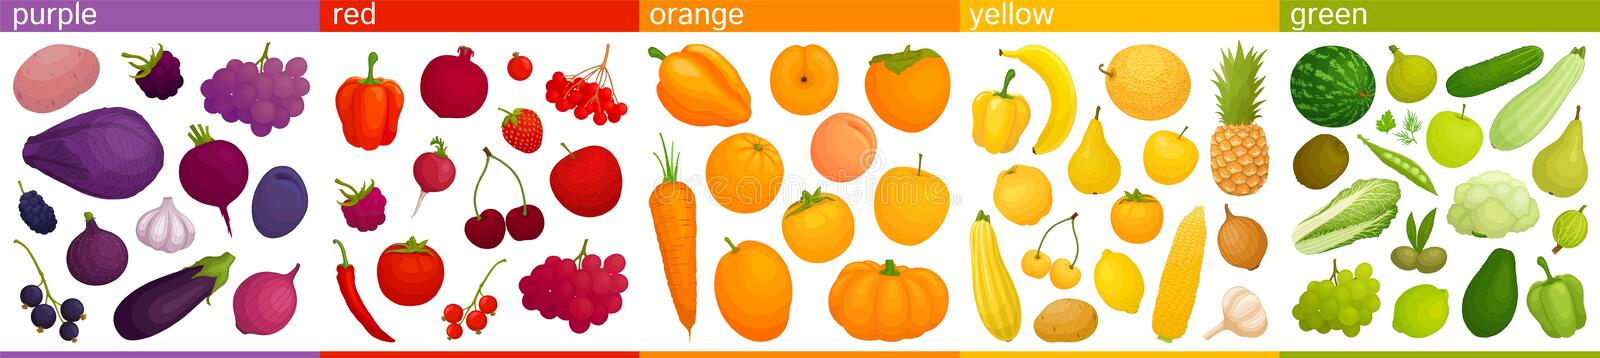 Vector colorful food. Vegetables and fruits are united in groups according to color. Set of multicolored fruits and vegetables assorted by colors. Vector stock illustration